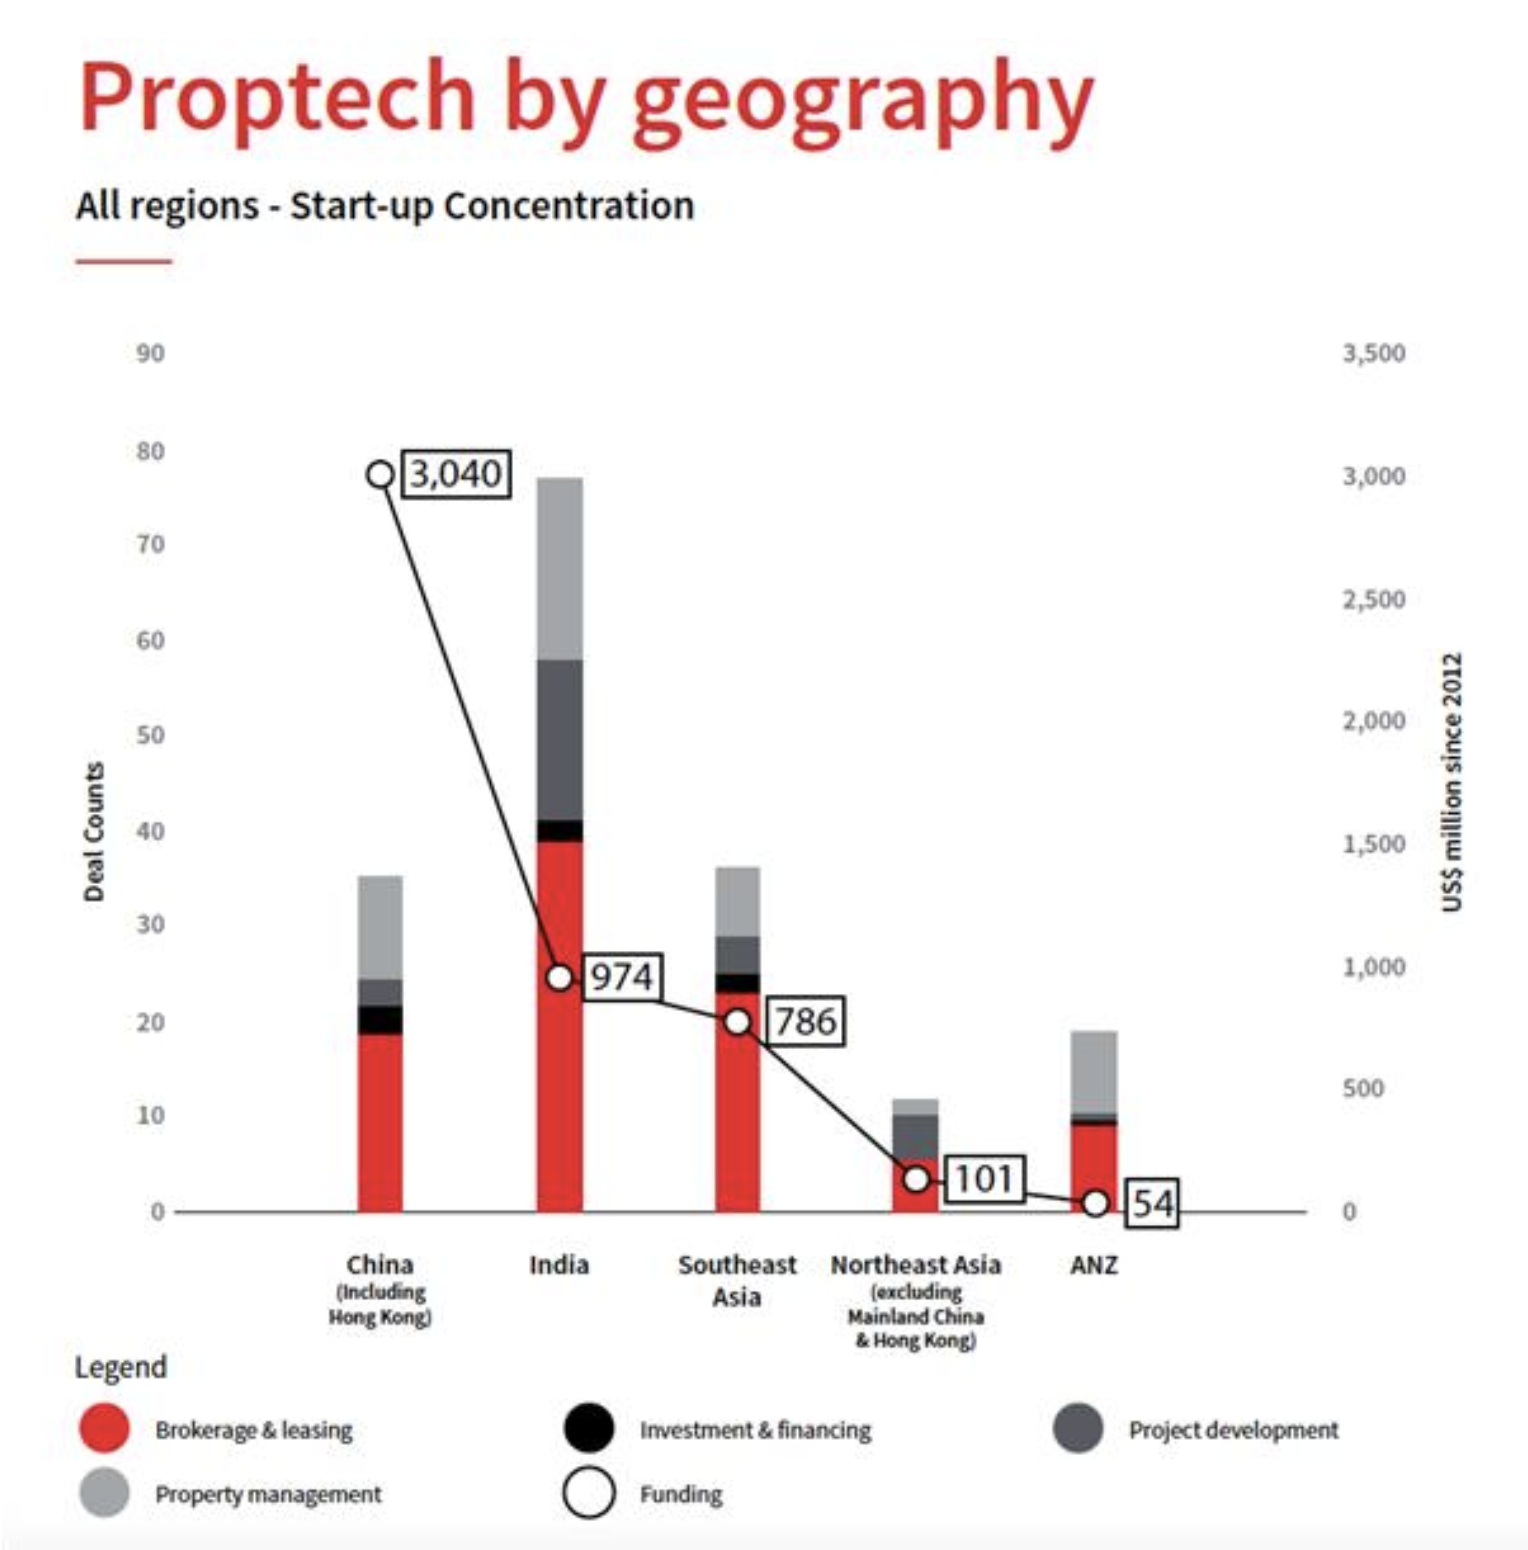 Proptech investment in Asia Pacific since 2012